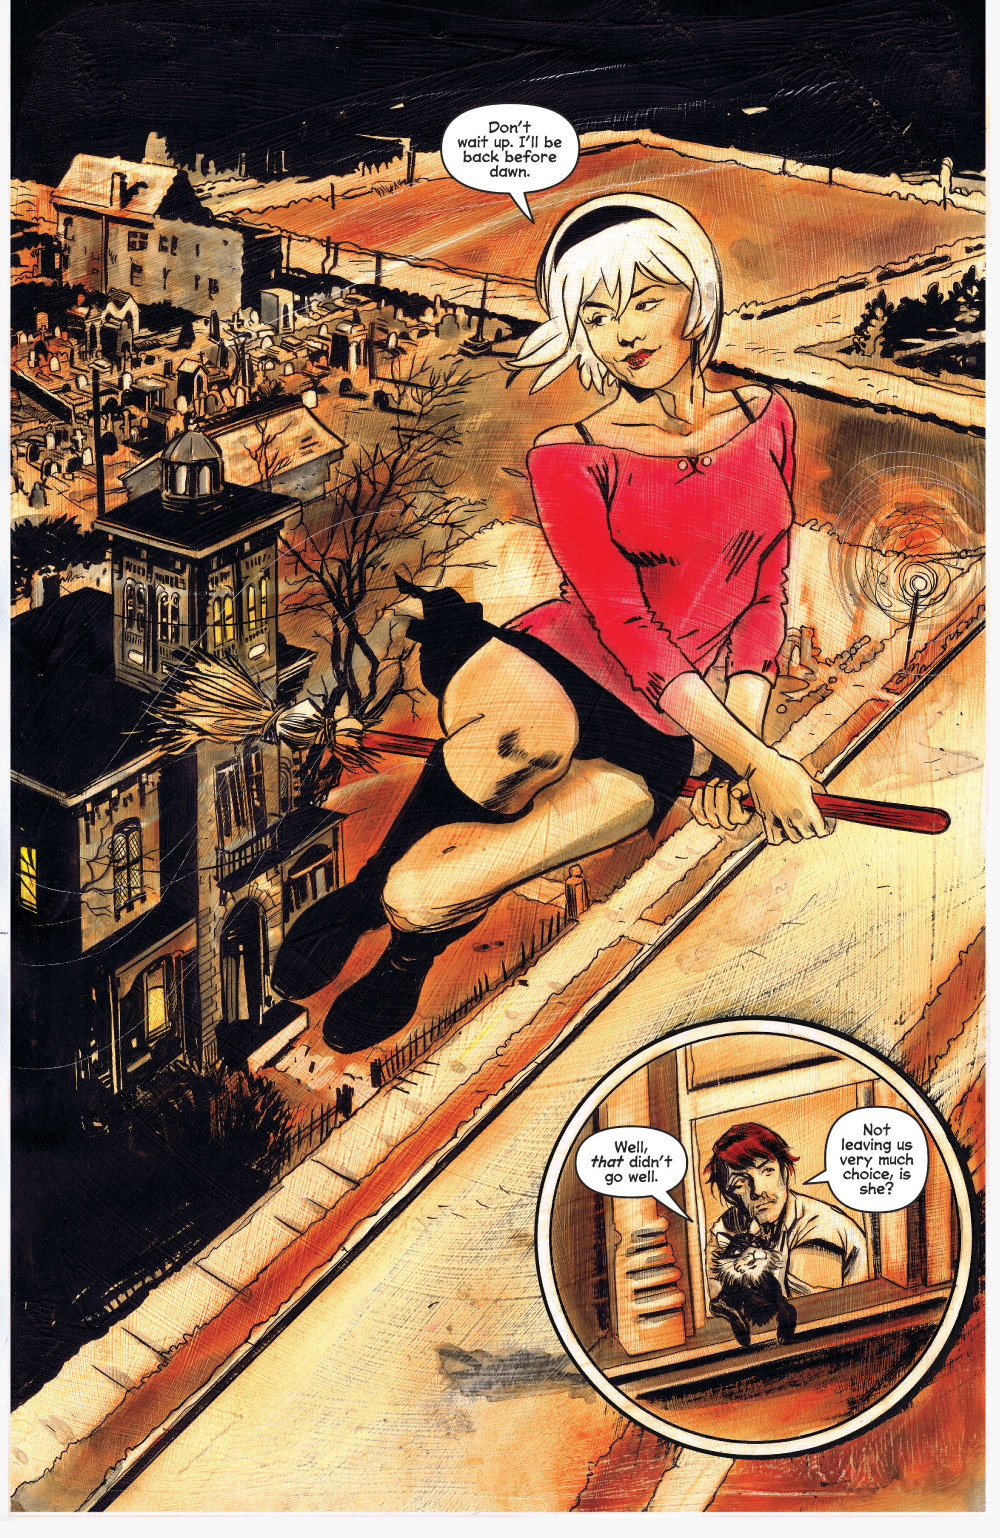 Interior page to 'Chilling Adventures of Sabrina #8. Art by Robert Hack/Archie Comics